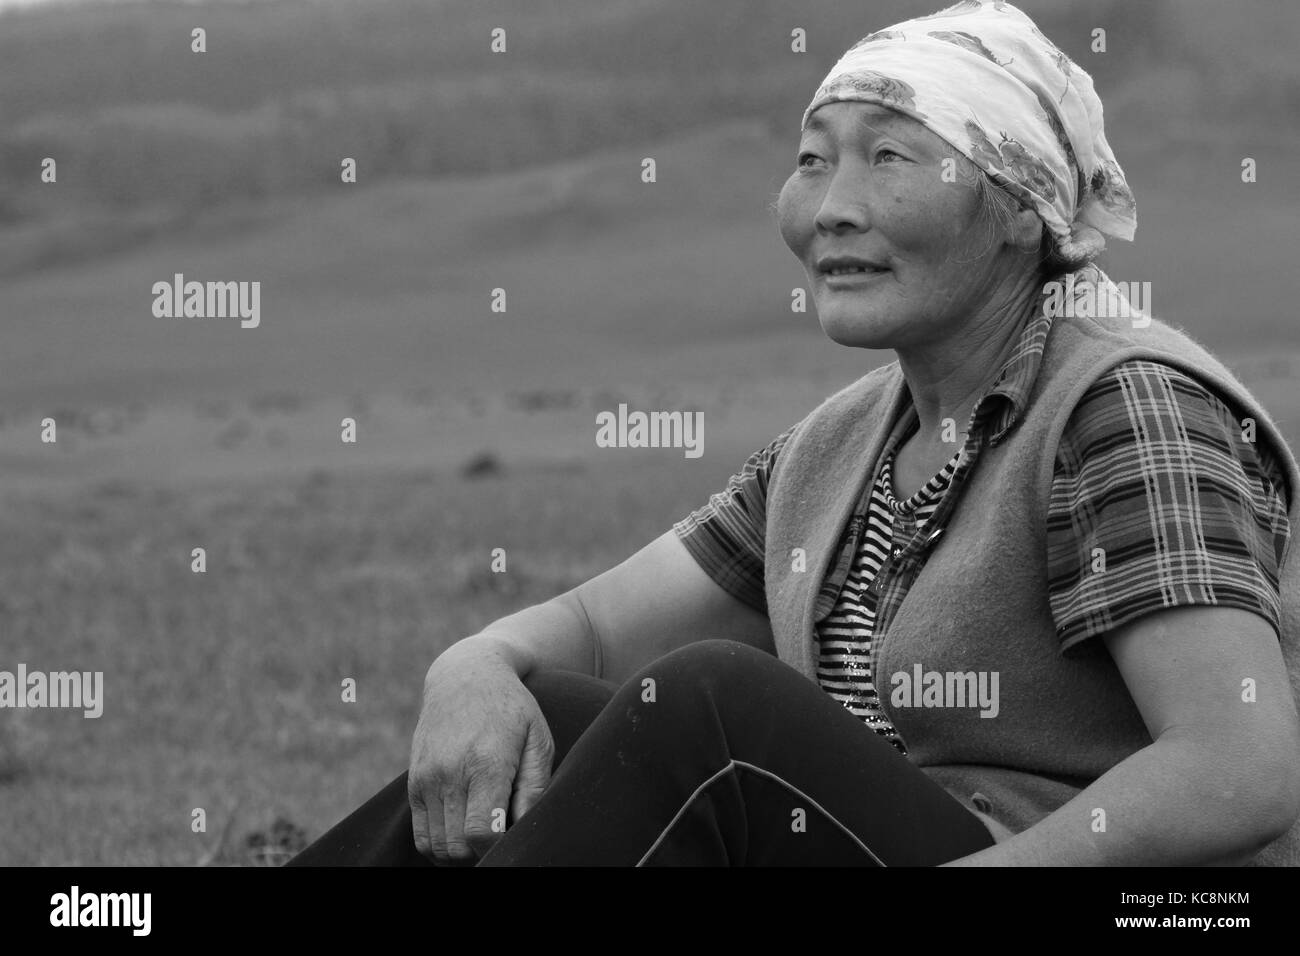 BAT-ULZII, MONGOLIA - JULY, 14, 2013 - A mongolian woman in the steppe. Half of mongolian population has a nomadic - Stock Image